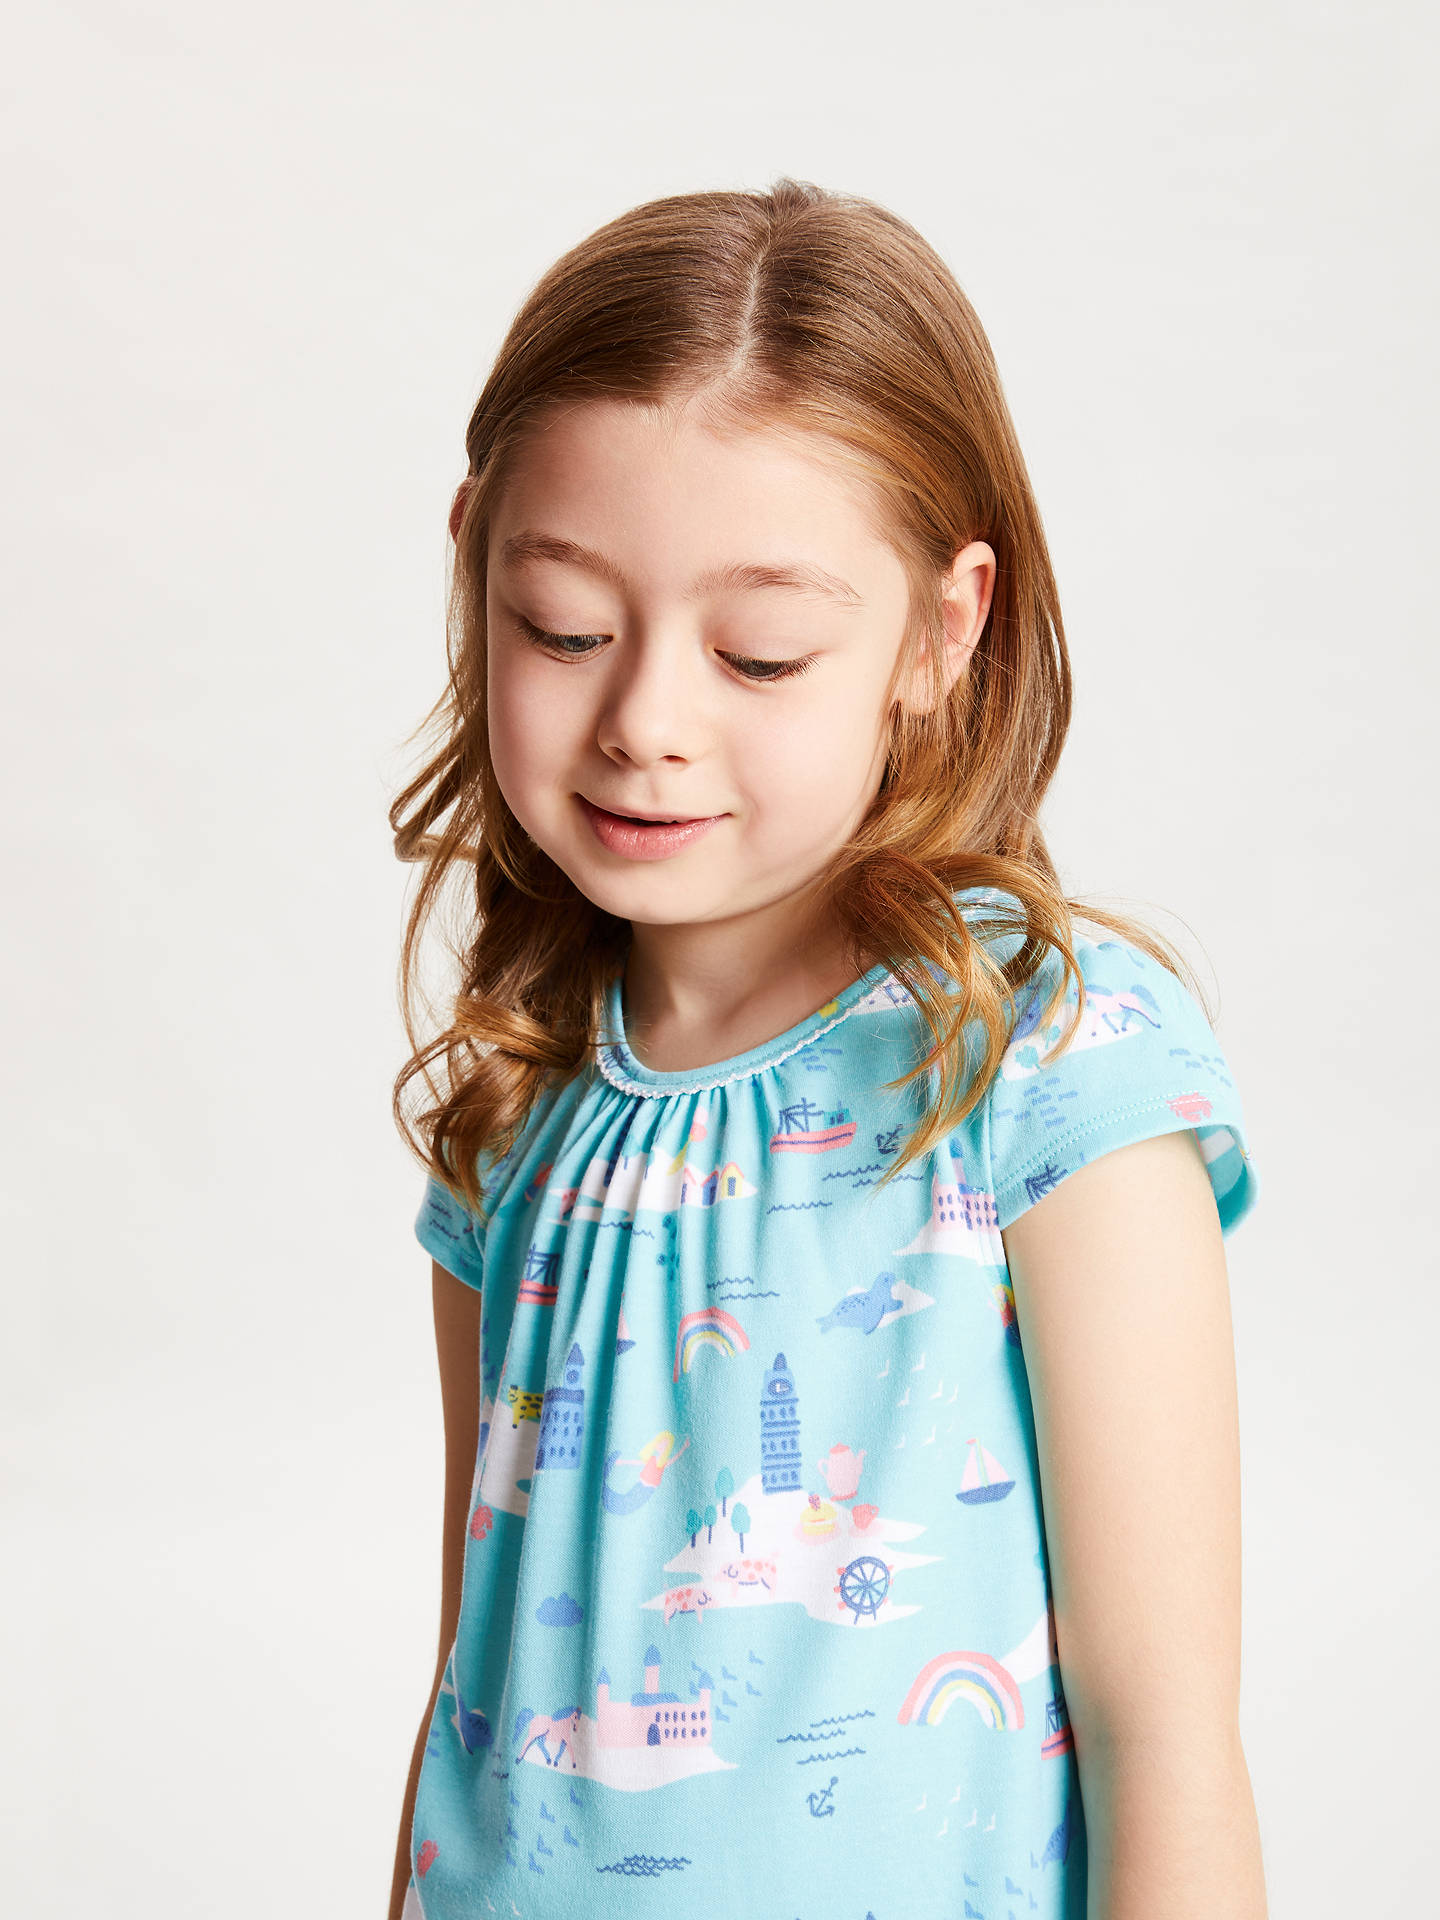 a876976b3 ... Buy John Lewis & Partners Girls' Rainbow Summer Print Night Dress,  Blue, 7 ...